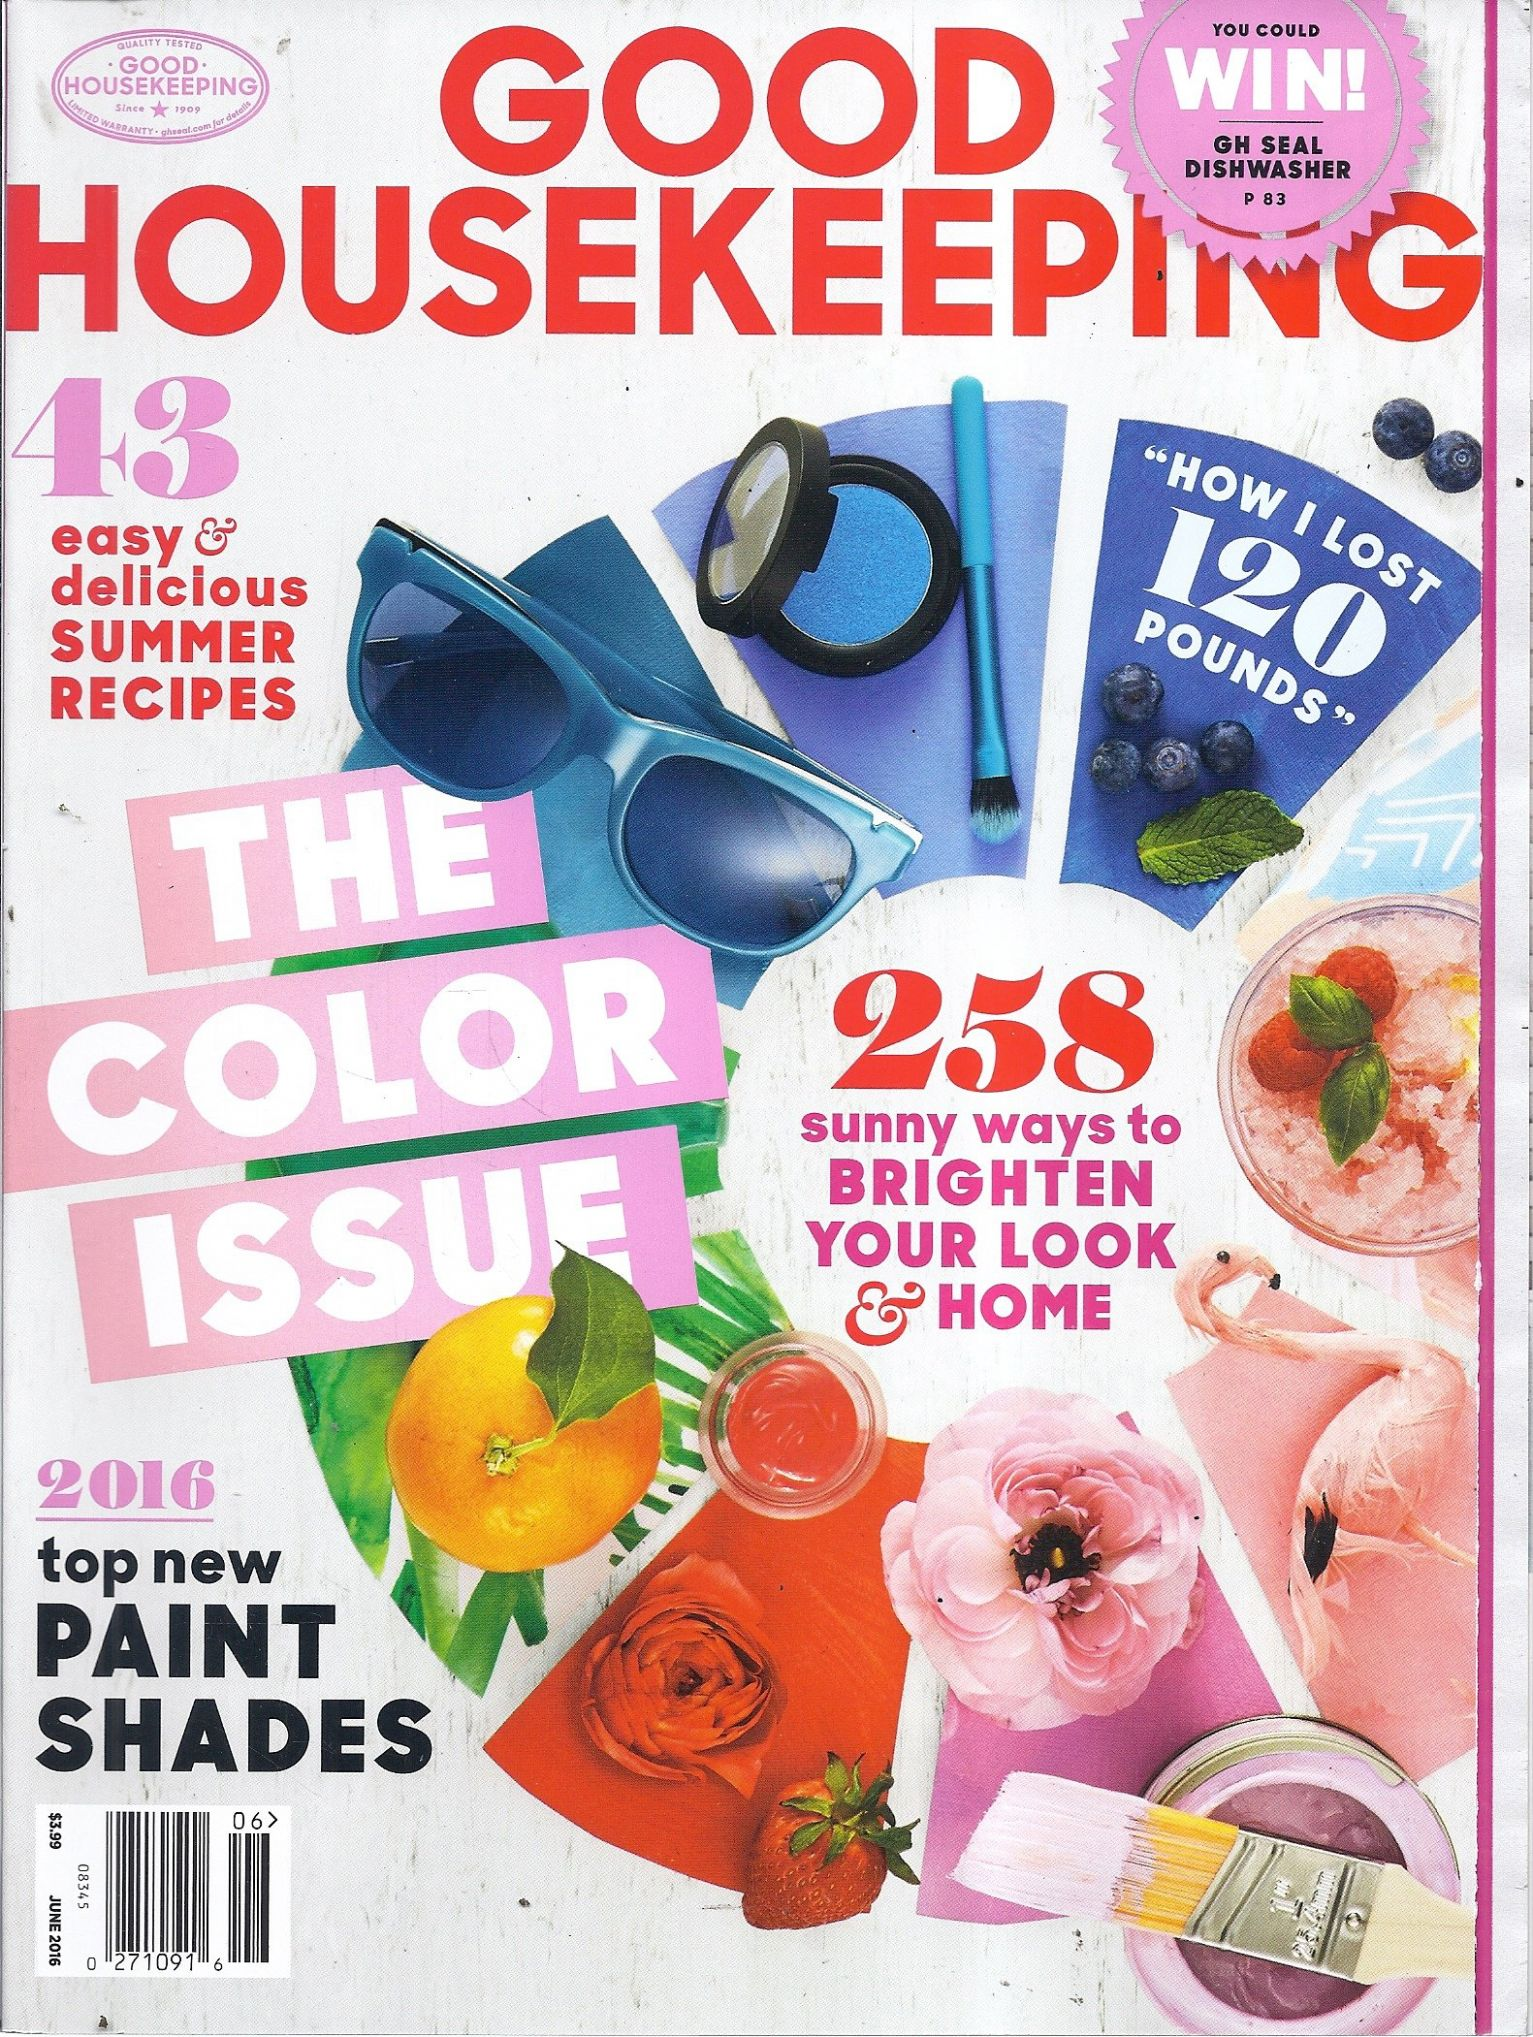 Good Housekeeping (June 11 - 11 Easy & Delicious Summer Recipes ..